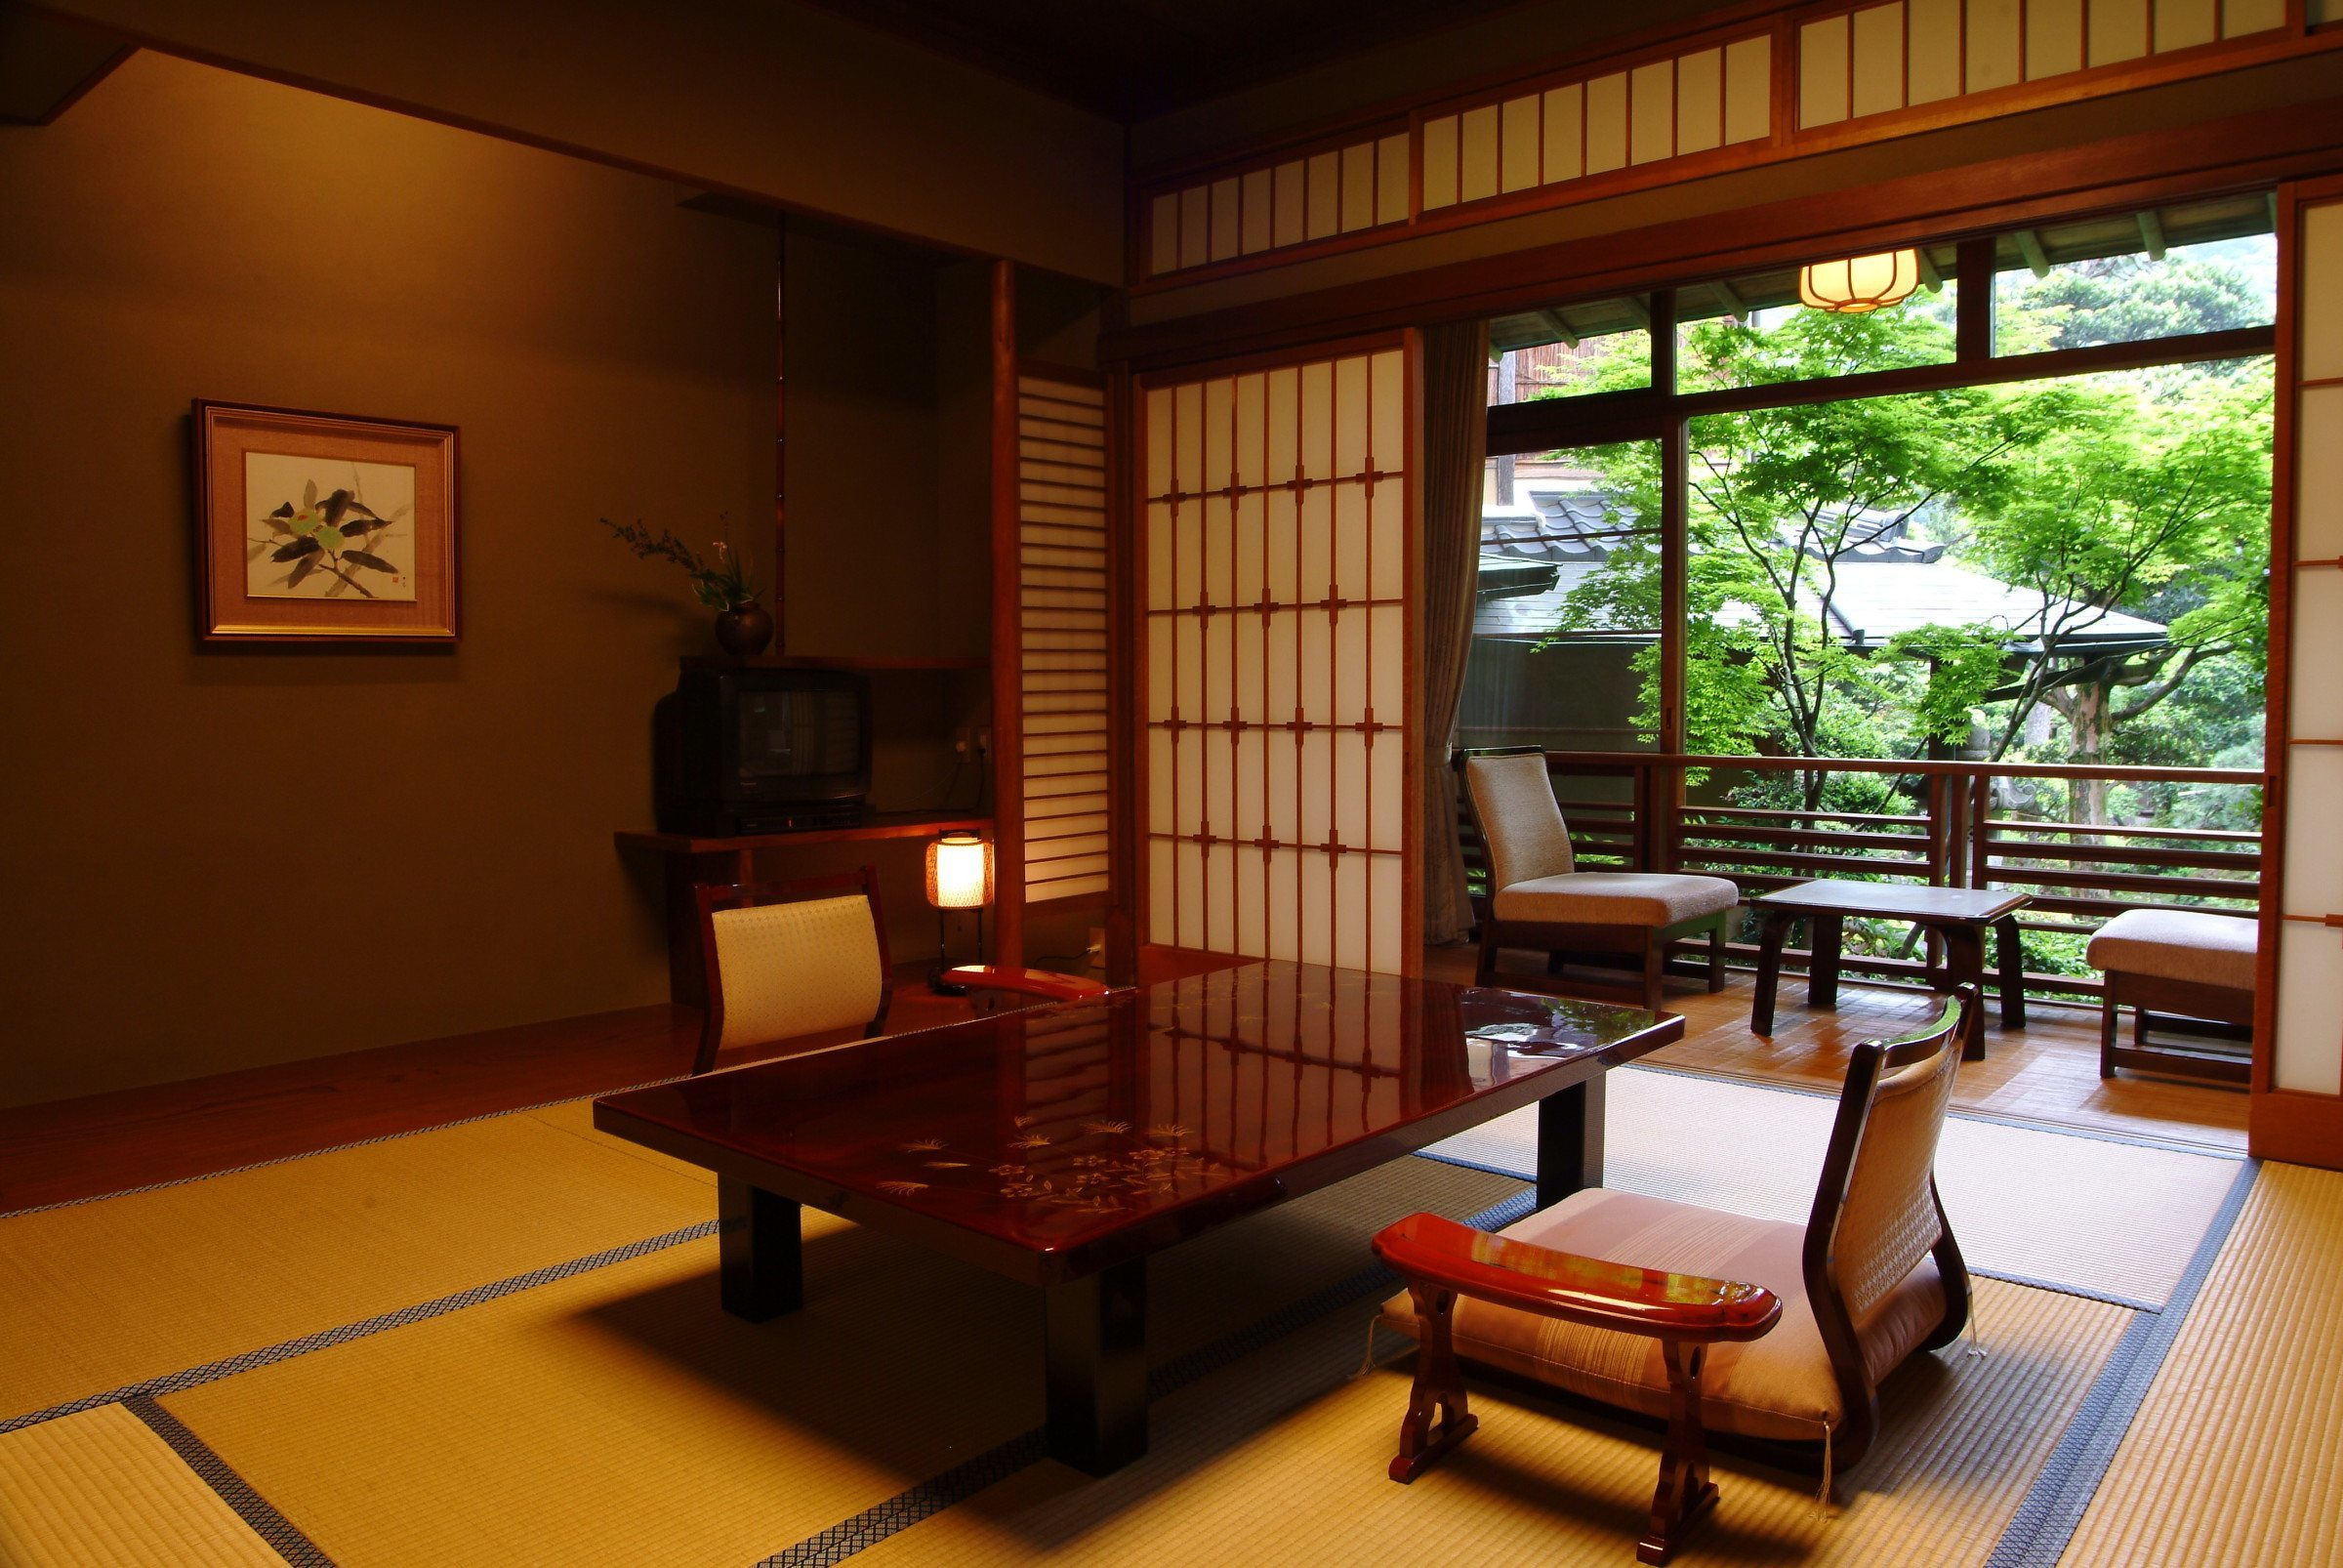 Traditional room at the Nishimuraya Ryokan